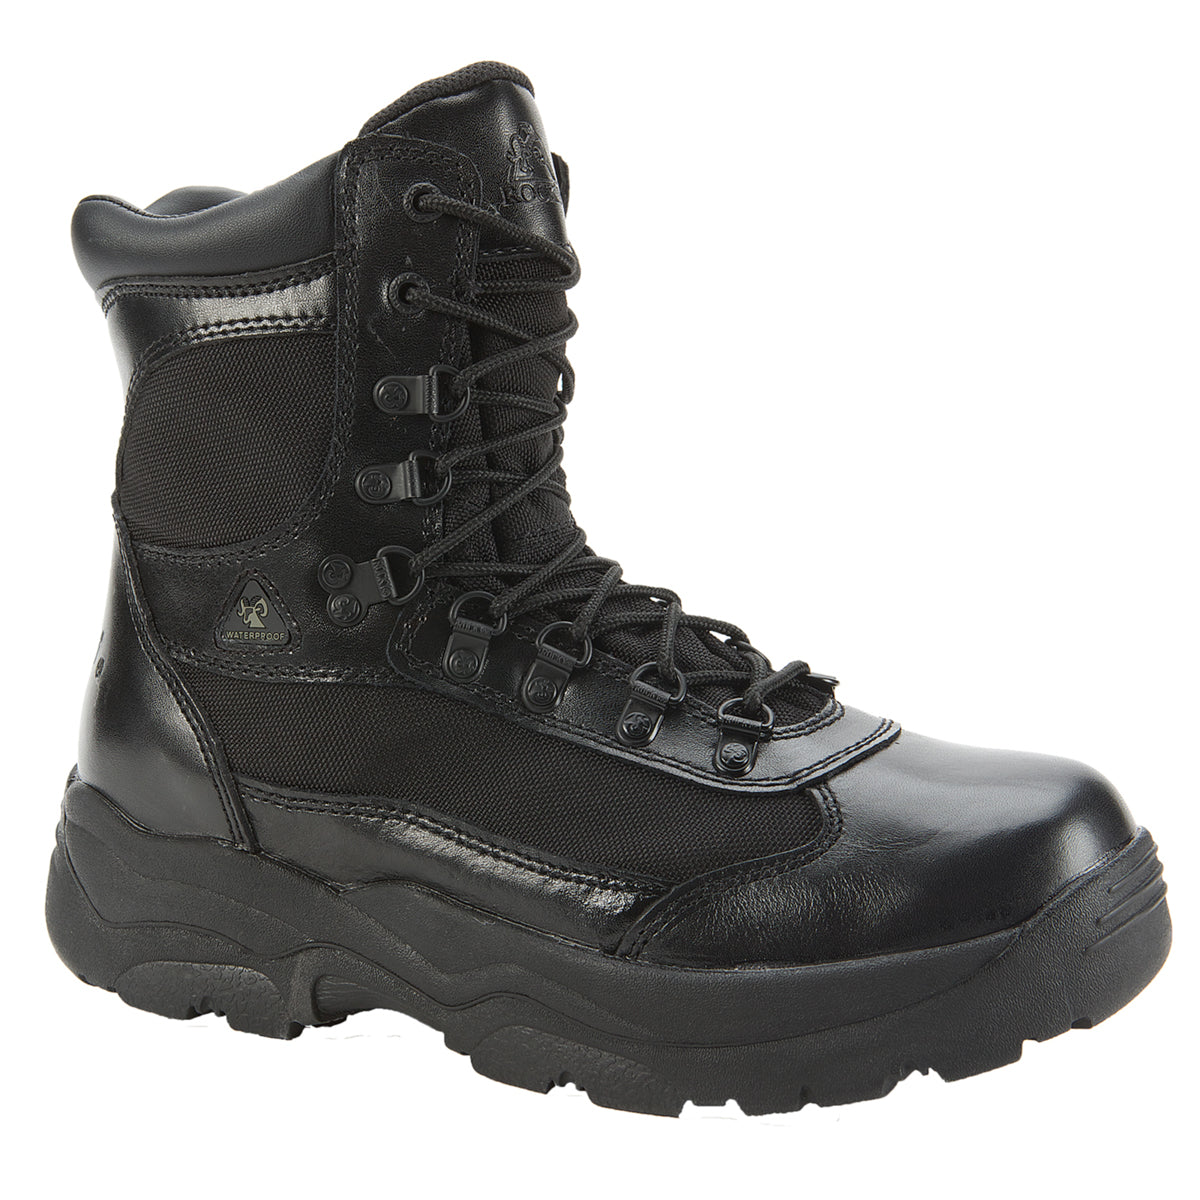 815289d7c22 Rocky – Workwear Unlimited